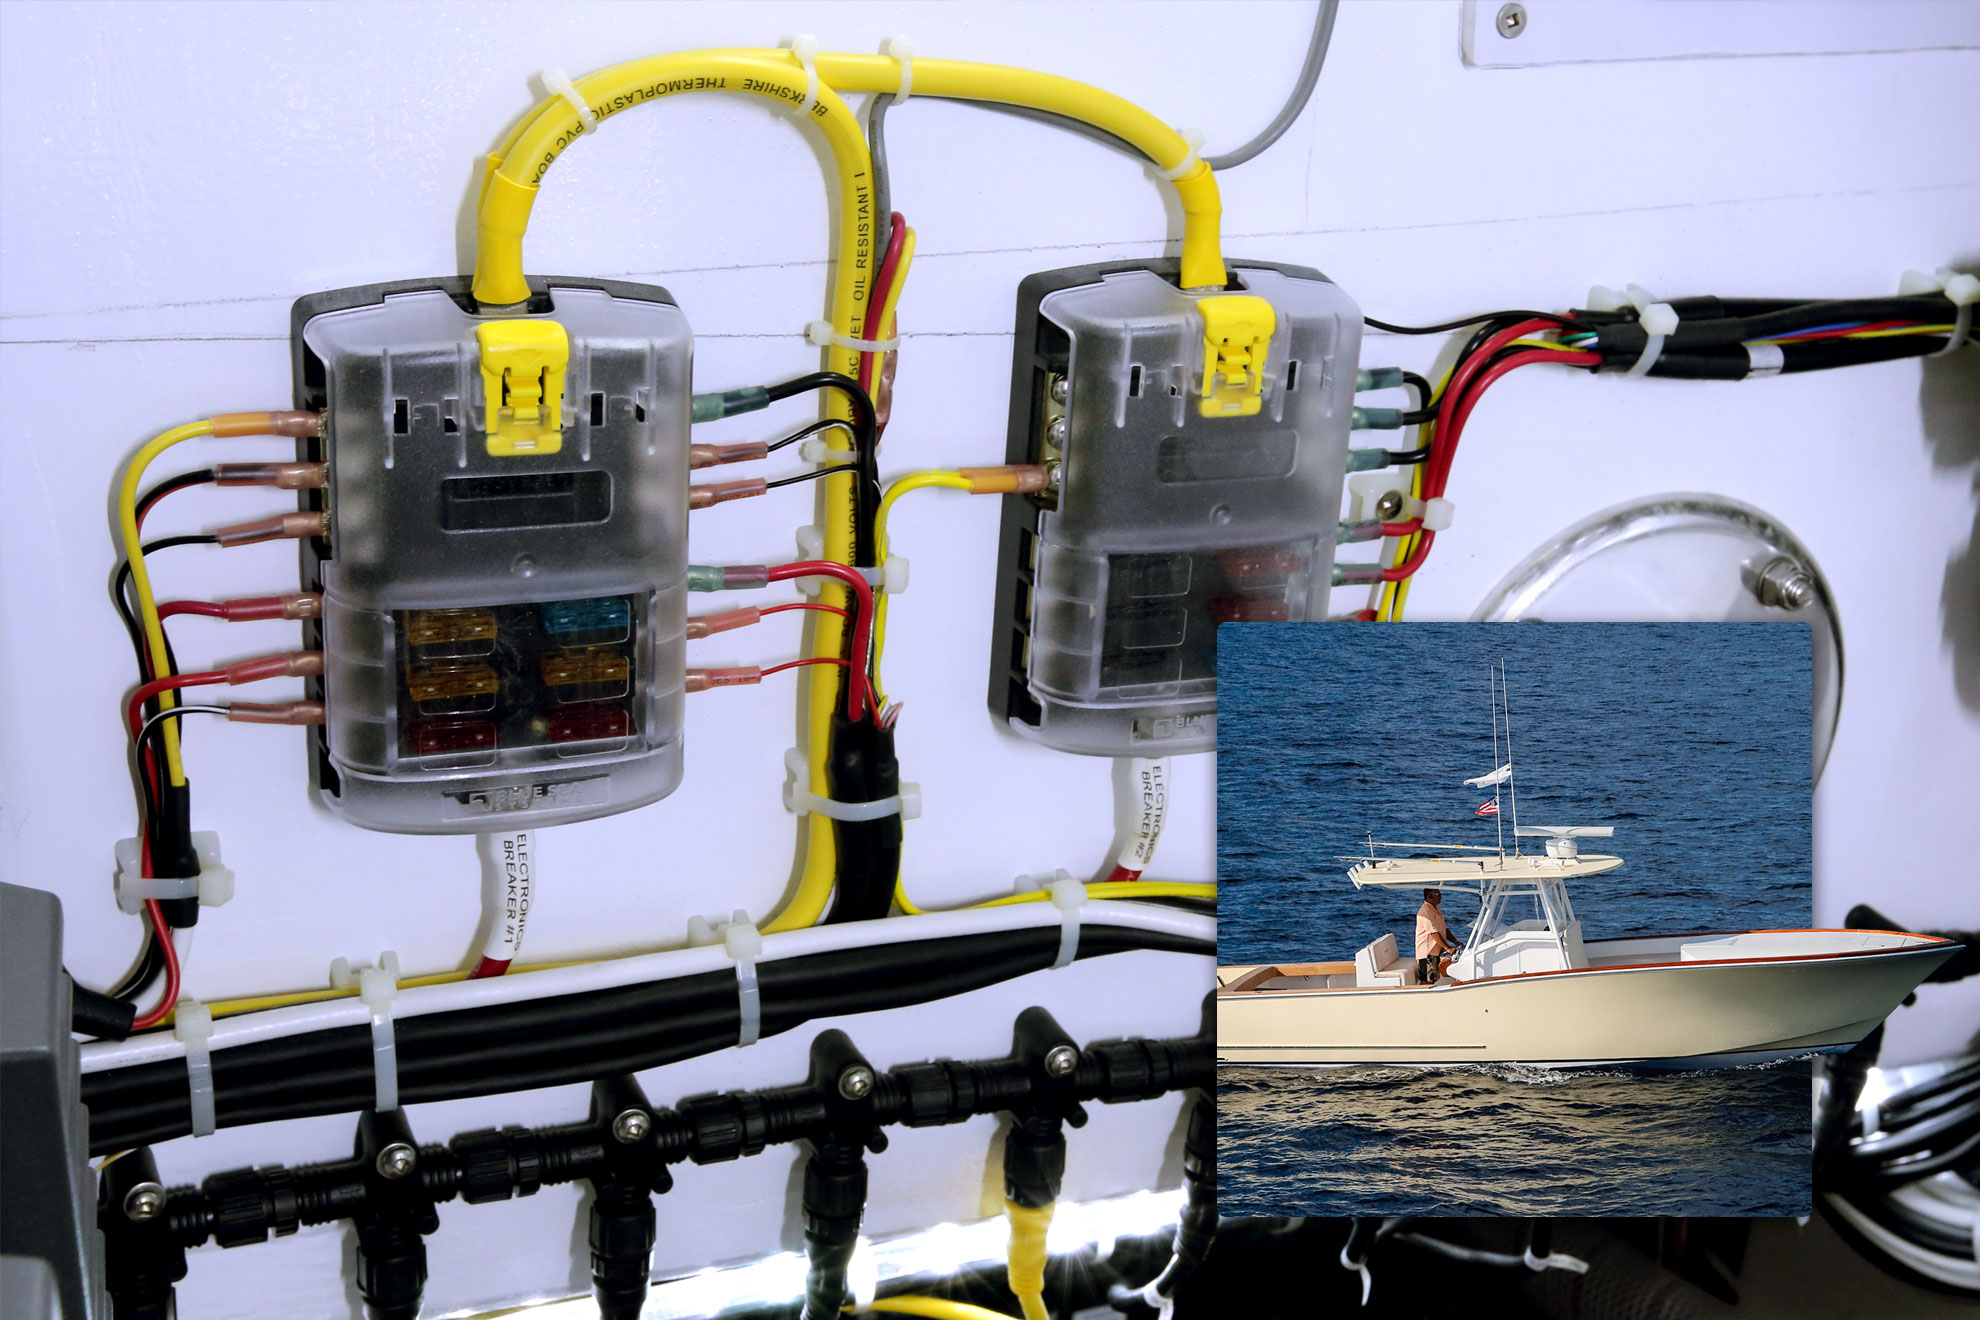 hight resolution of st blade fuse block 6 circuits with negative bus and cover blue sea systems